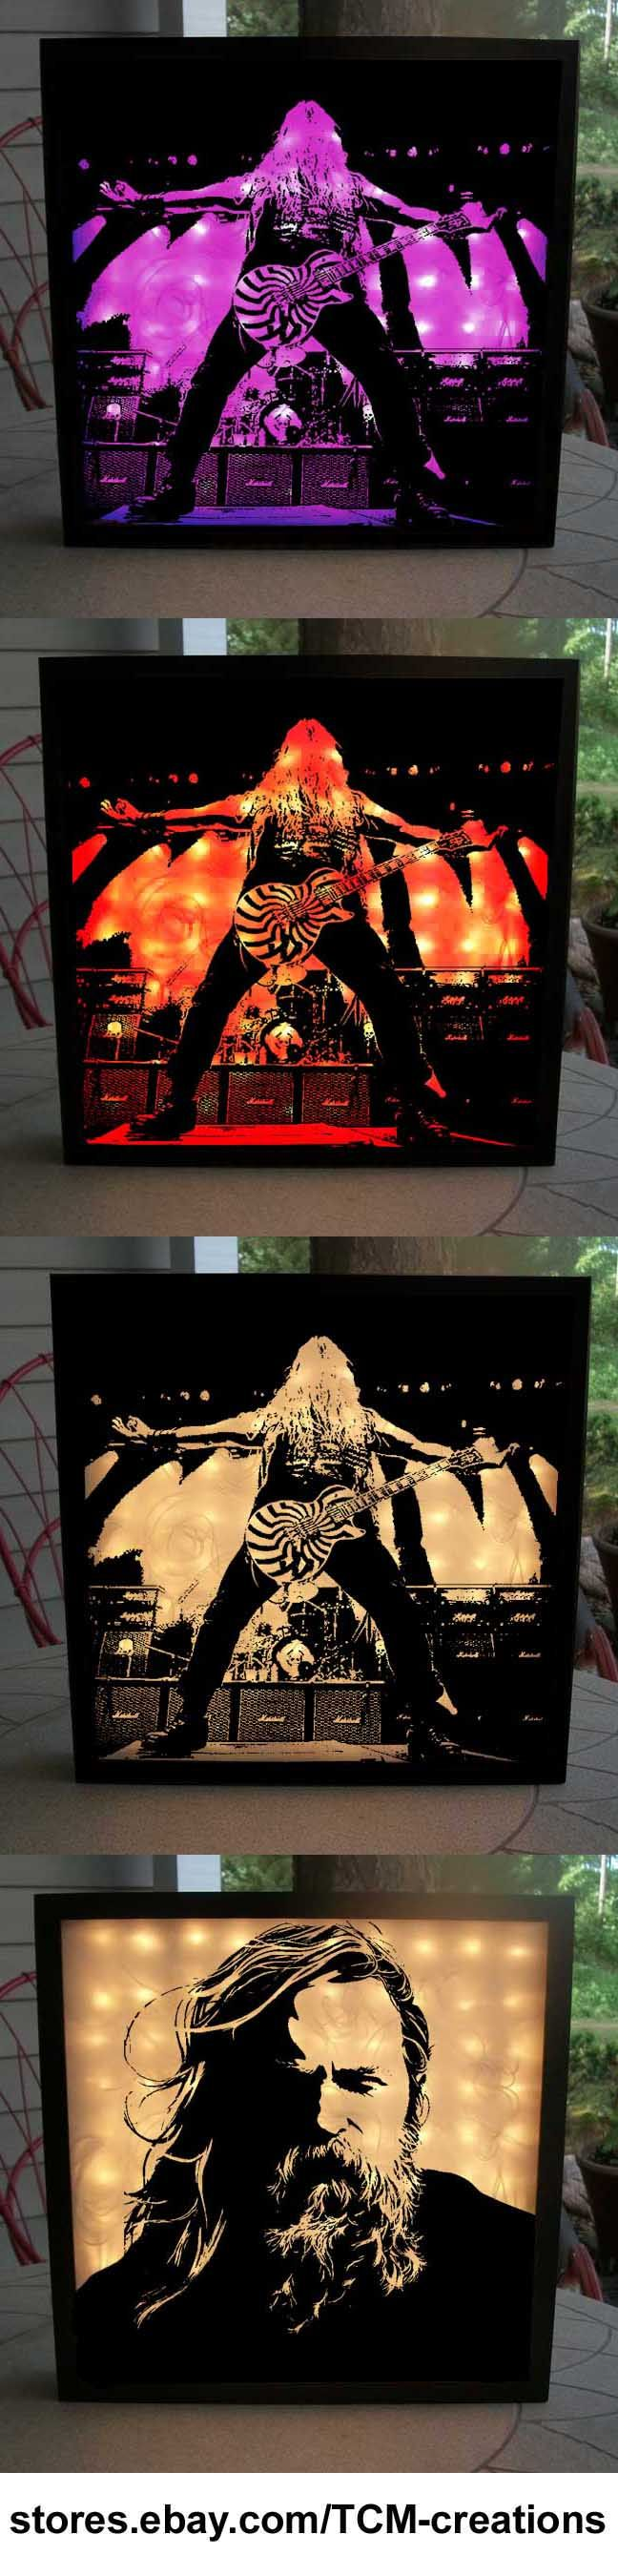 Zakk Wylde Shadow Boxes with LED lighting. Black Label Society, Pride & Glory, Ozzy Osbourne, Sonic Brew, No Rest For The Wicked, No More Tears, Ozzmosis, The Bessed Hellride, Shot To Hell, 1919 Eternal, Book Of Shadows, Stronger Than Death, Hangover Music Vol. 6, Mafia, Order Of The Black, Catacombs Of The Black Vatican.